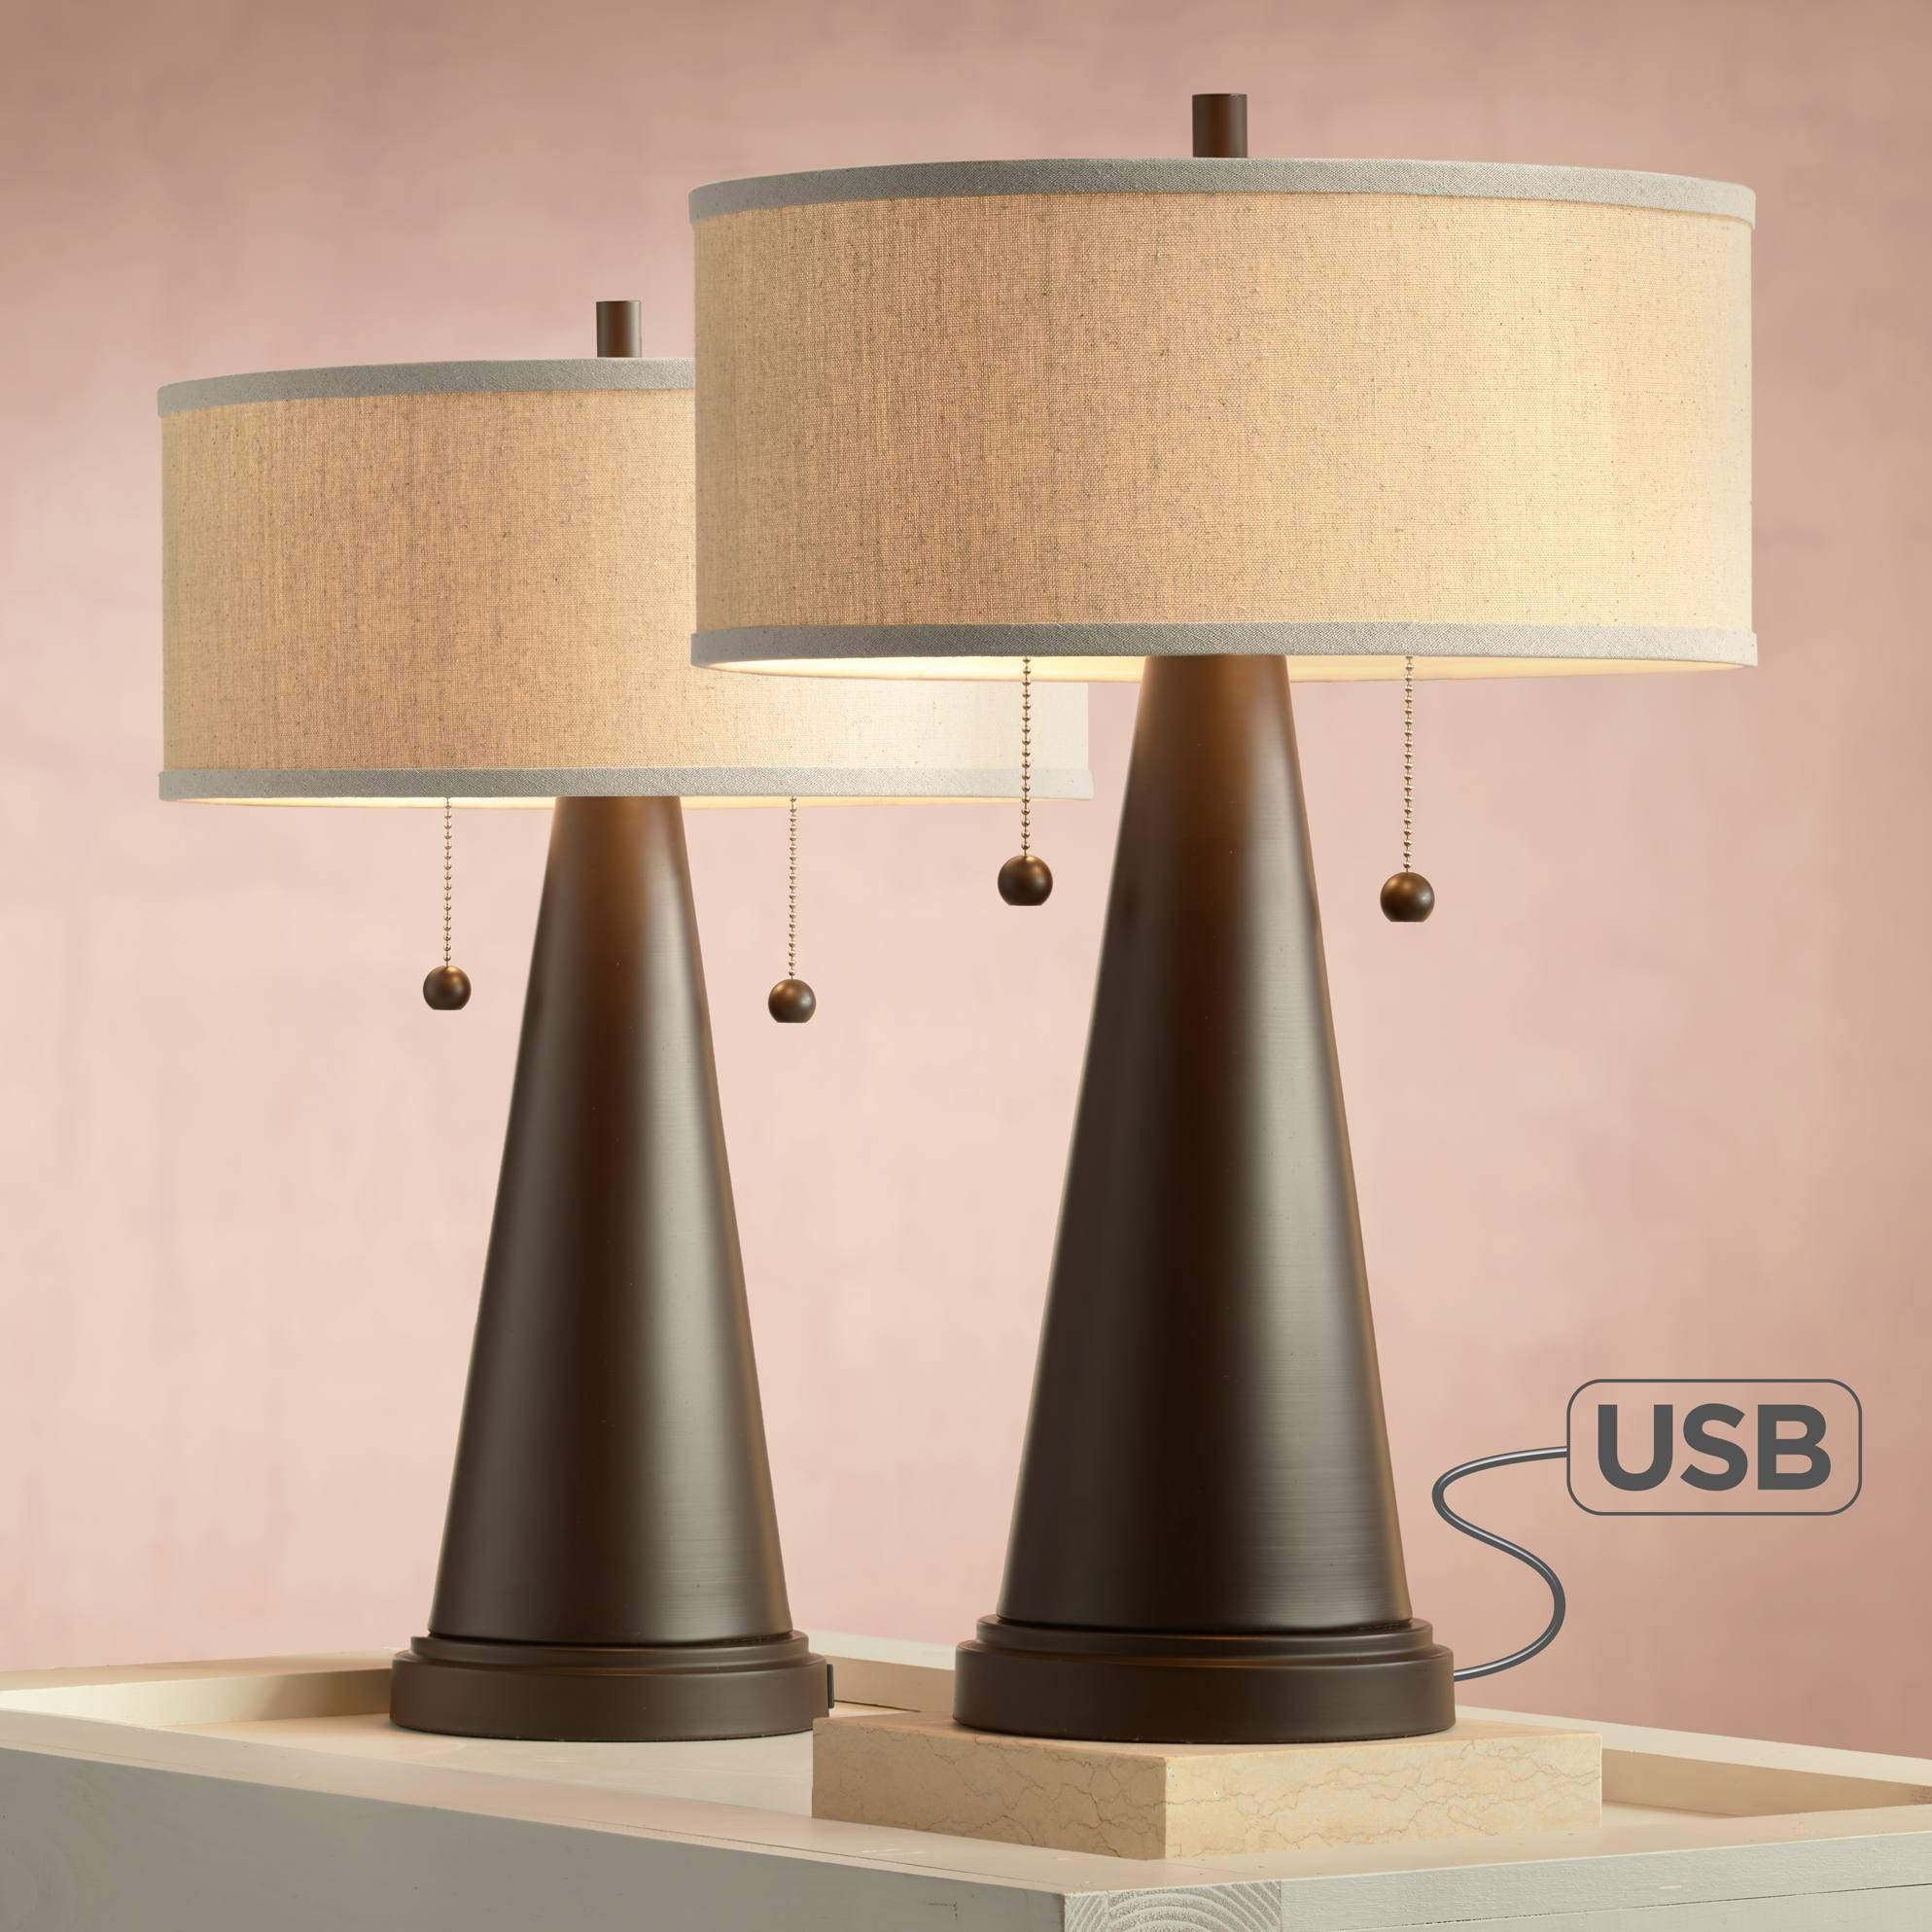 Craig Mid Century Modern Accent Table Lamps Set of 2 with Hotel Style USB Port Bronze Metal Natural Linen Drum Shade for Bedroom - Franklin Iron Works